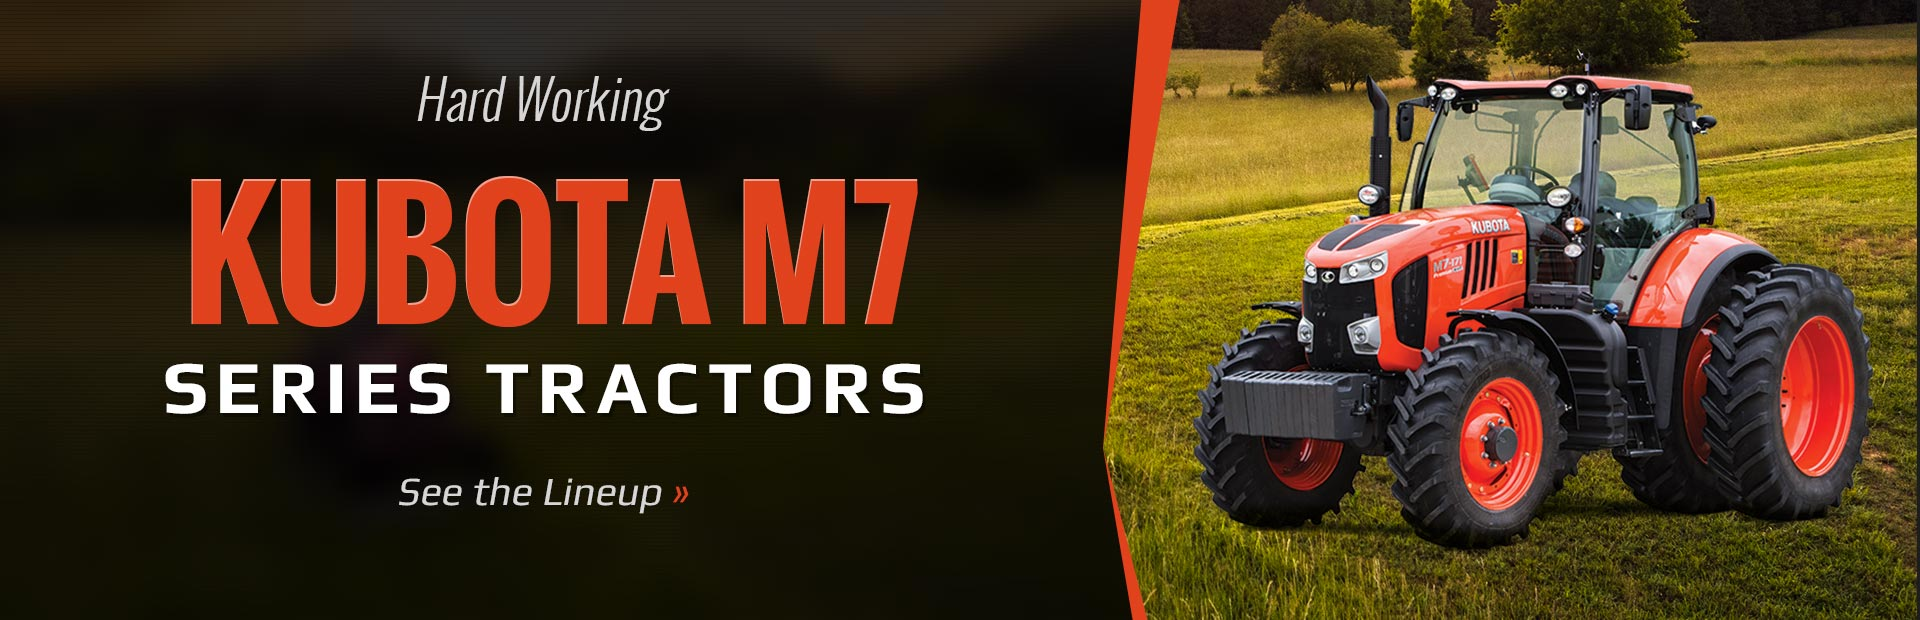 Kubota M7 Series Tractors: Click here to view the models.